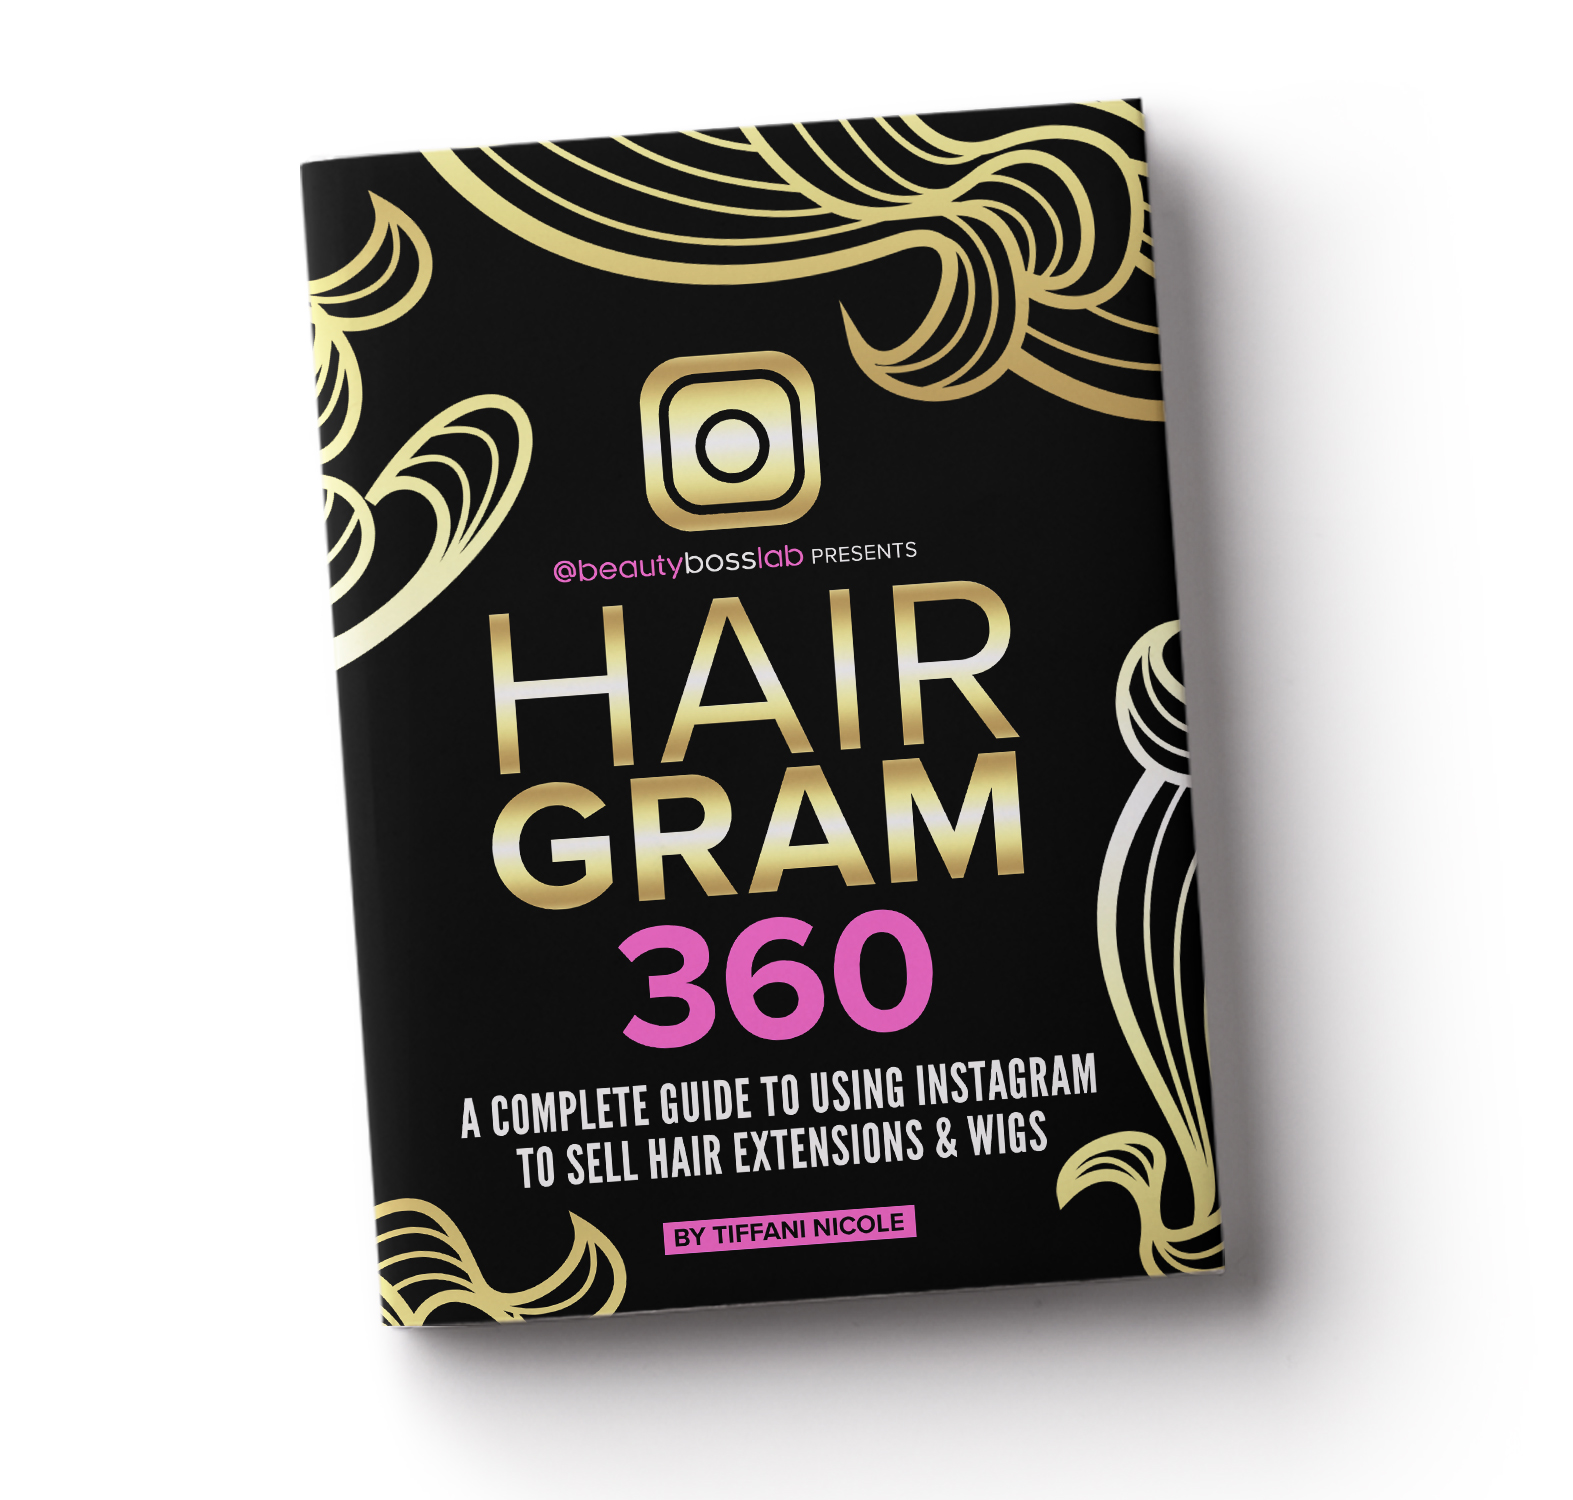 Build an Audience Online. - In order to make sales online you MUST build an audience first. HAIRGRAM360™ takes you step by step through building an audience for hair and wigs using the Instagram platform.